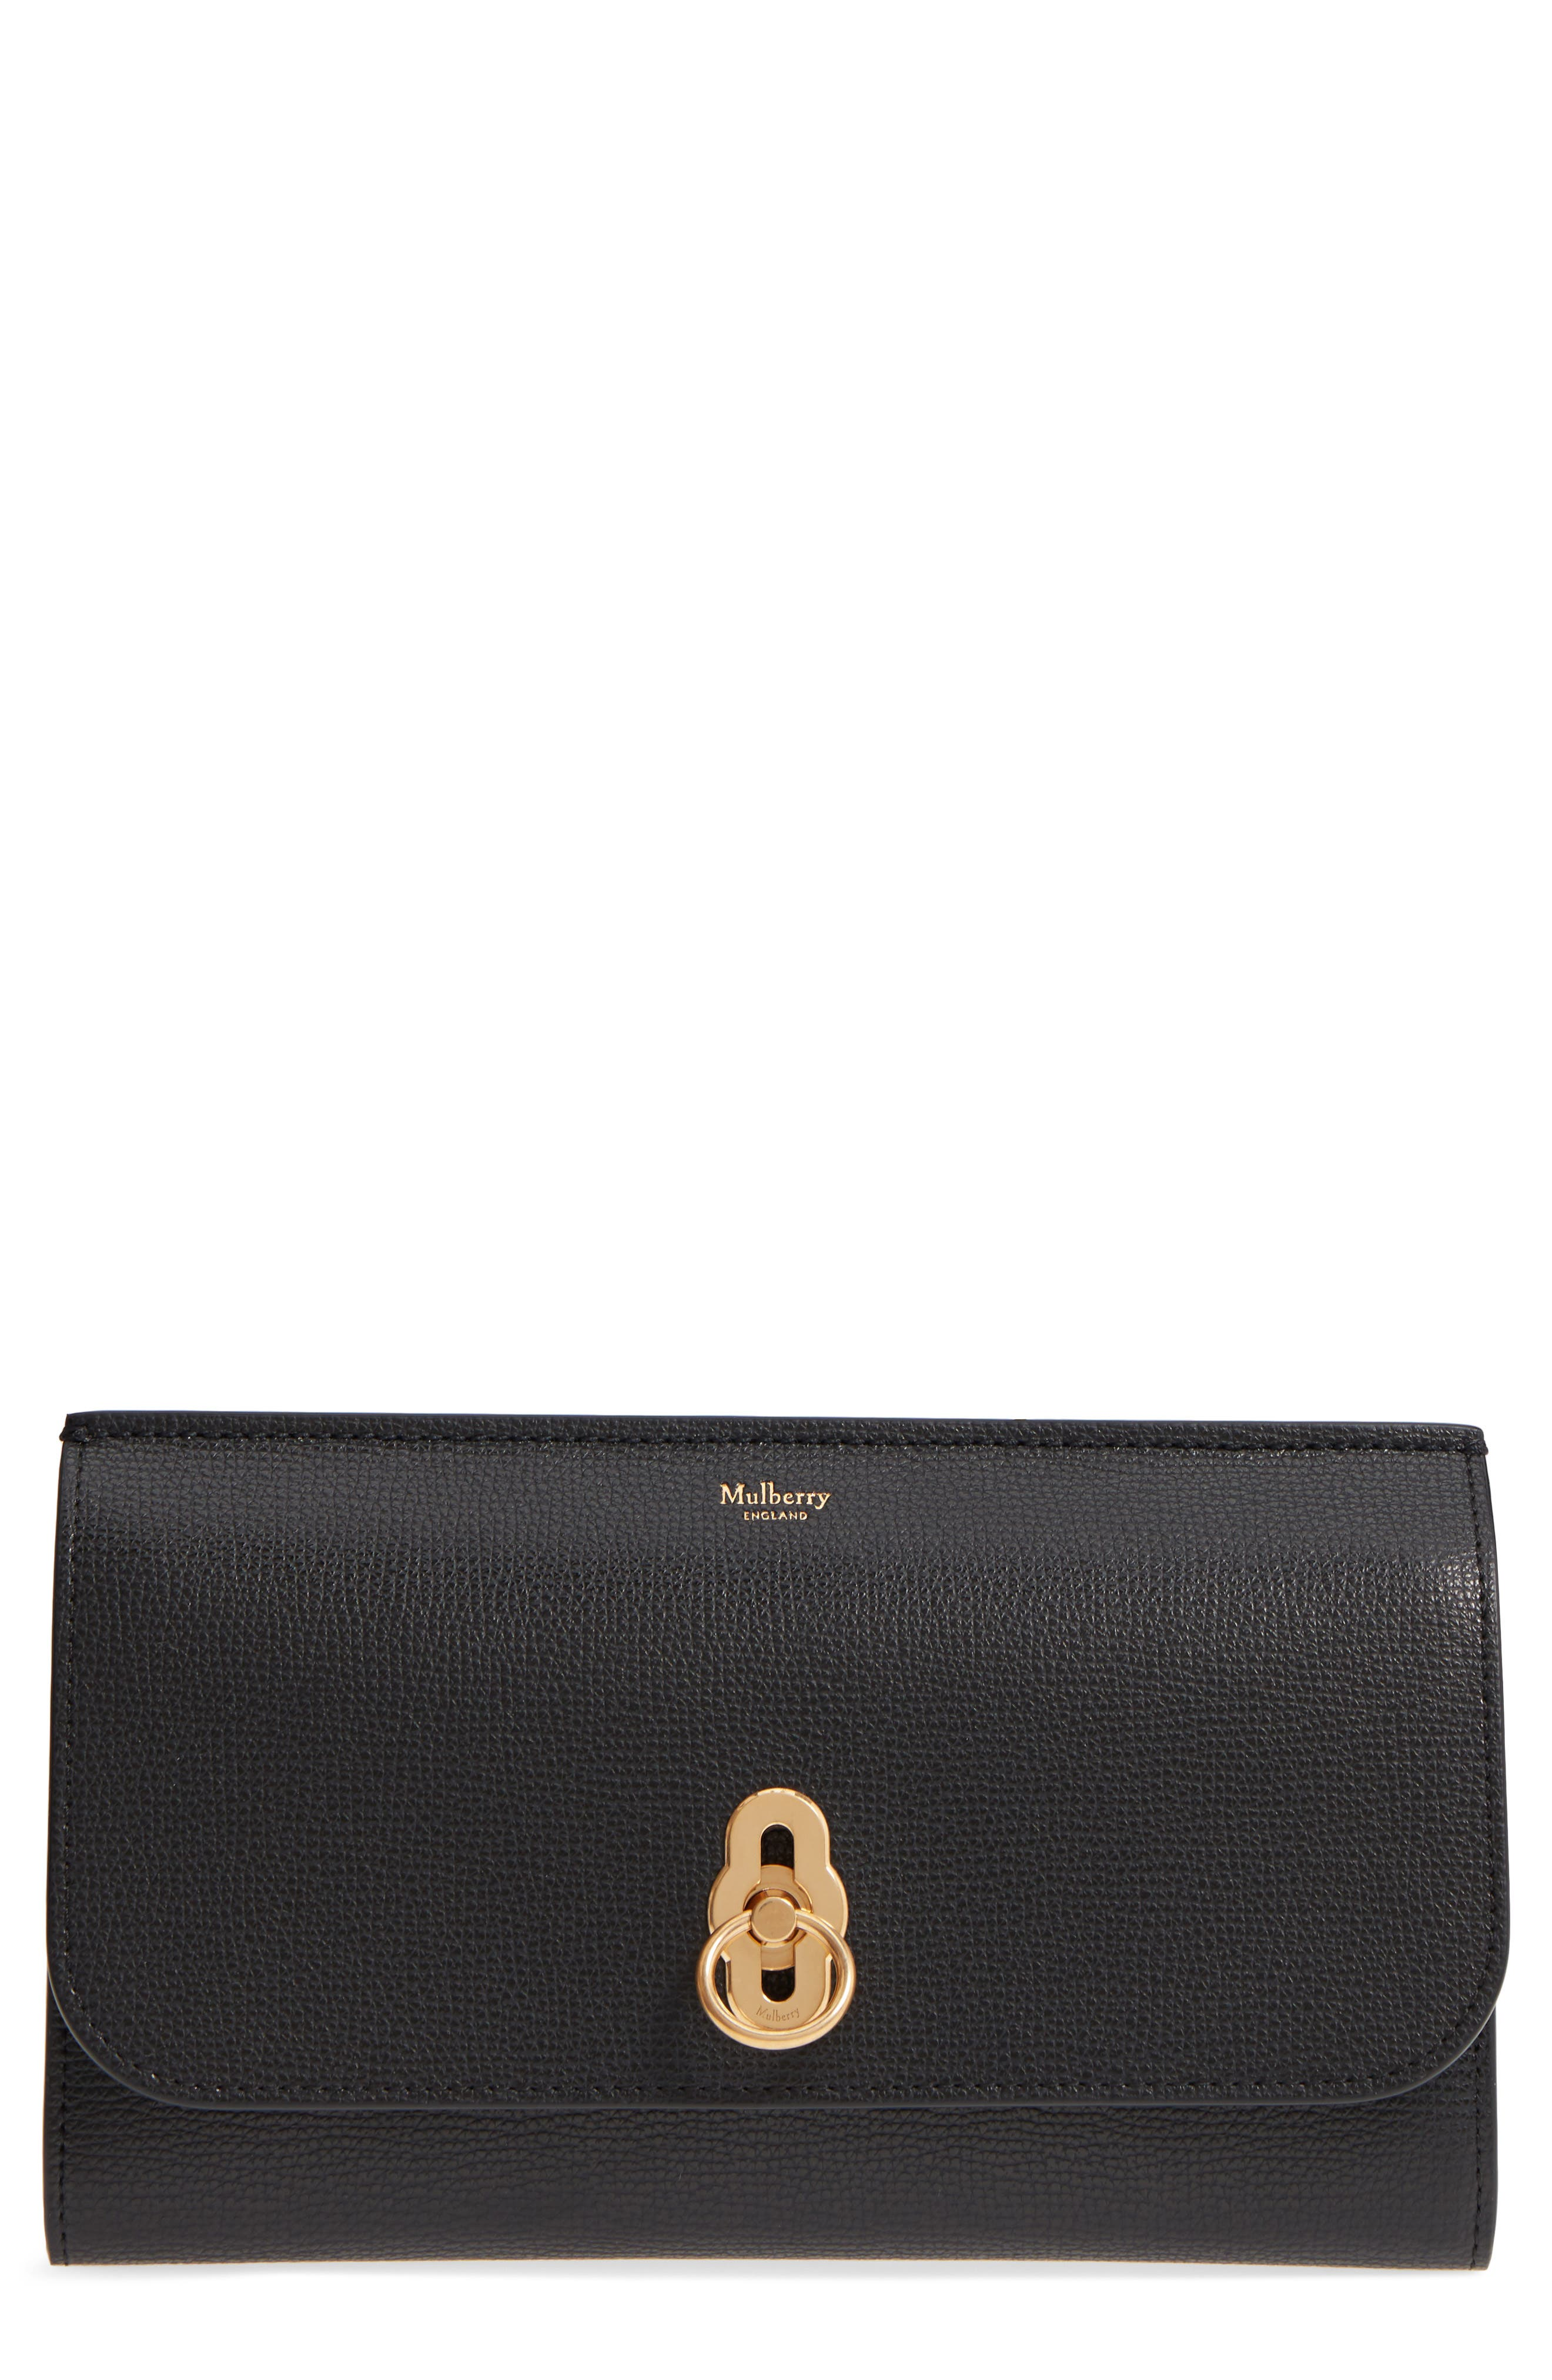 Mulberry Amberley Calfskin Leather Clutch | Nordstrom